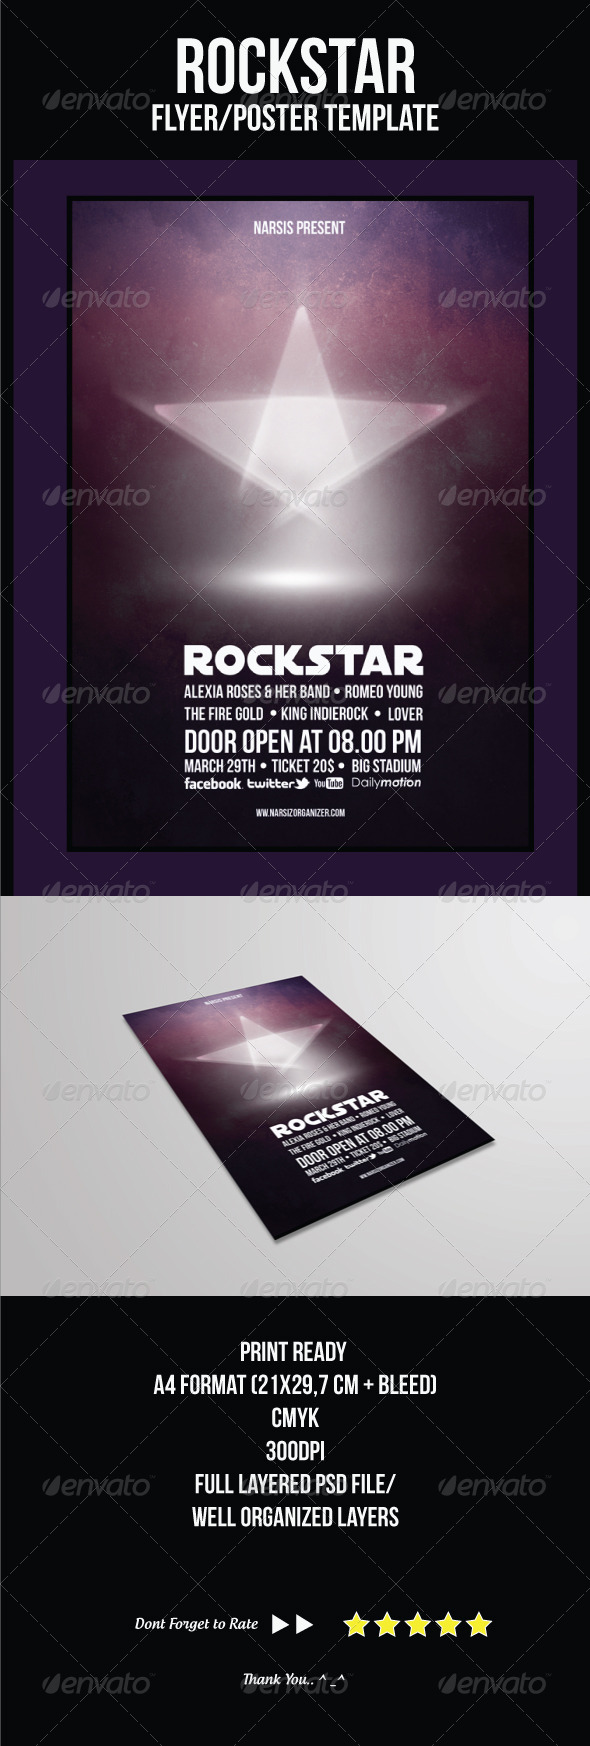 Rock Star Flyer Template - Concerts Events